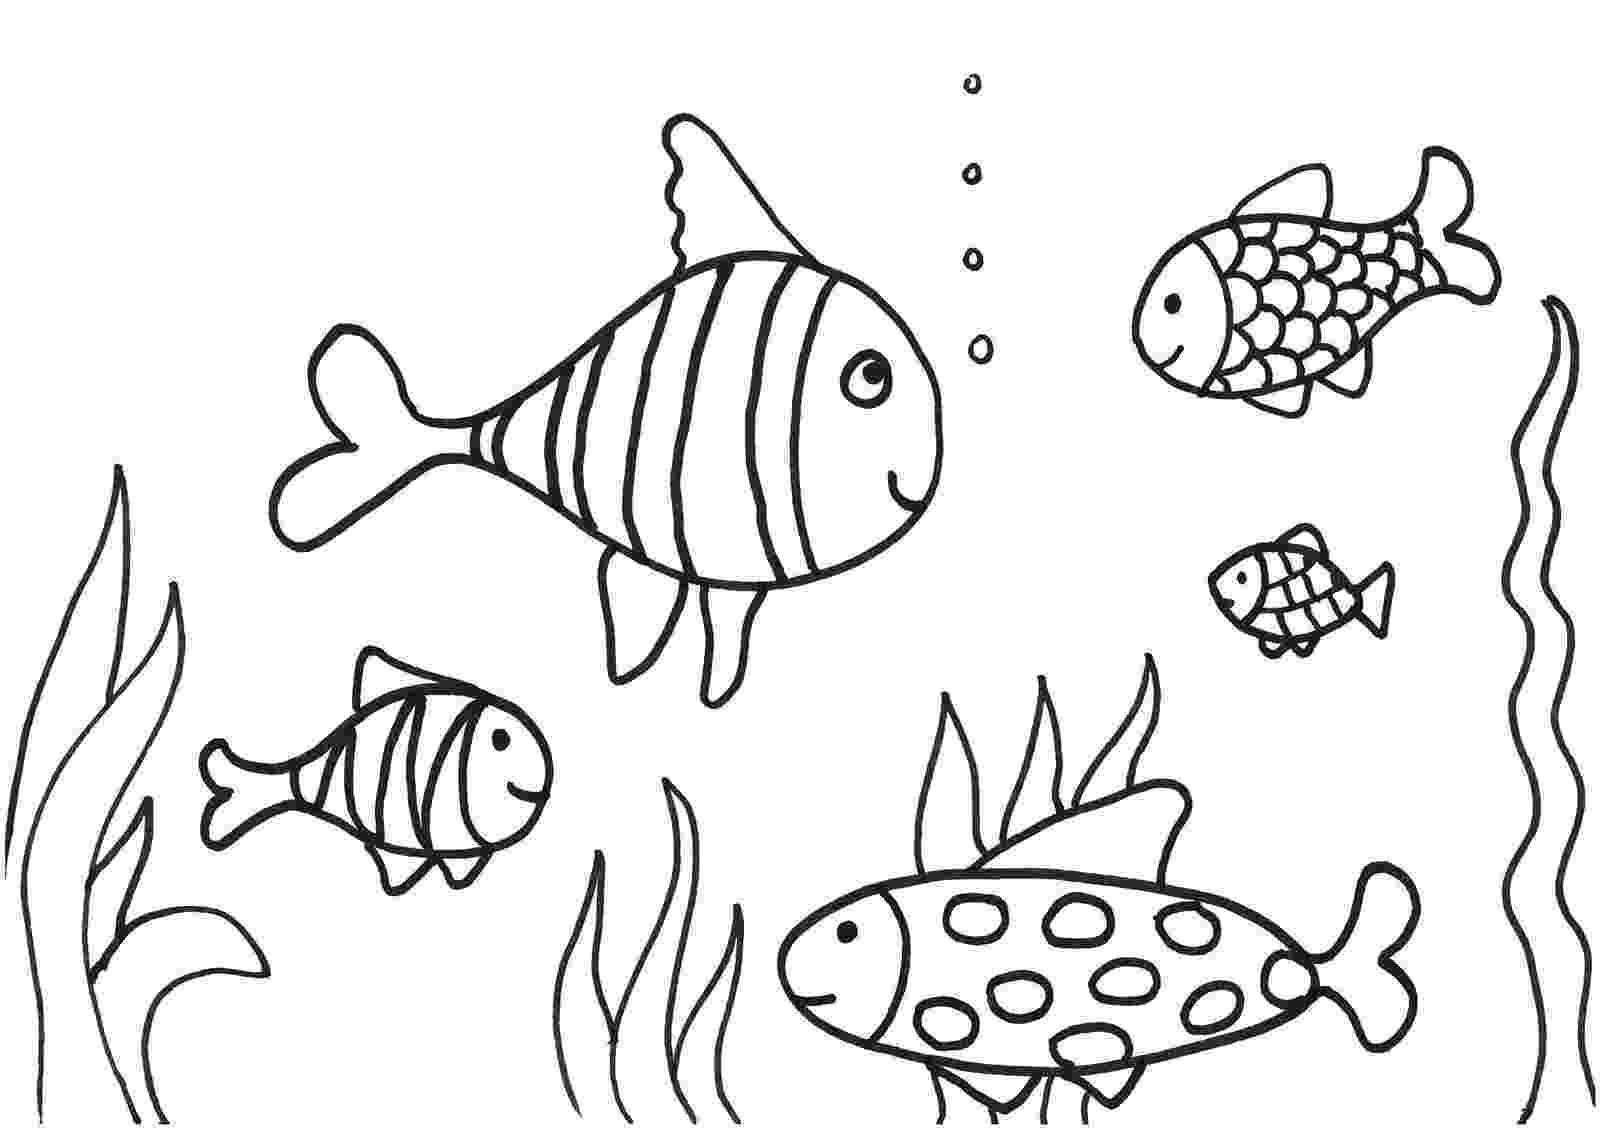 fish colouring images fish coloring pages team colors images colouring fish